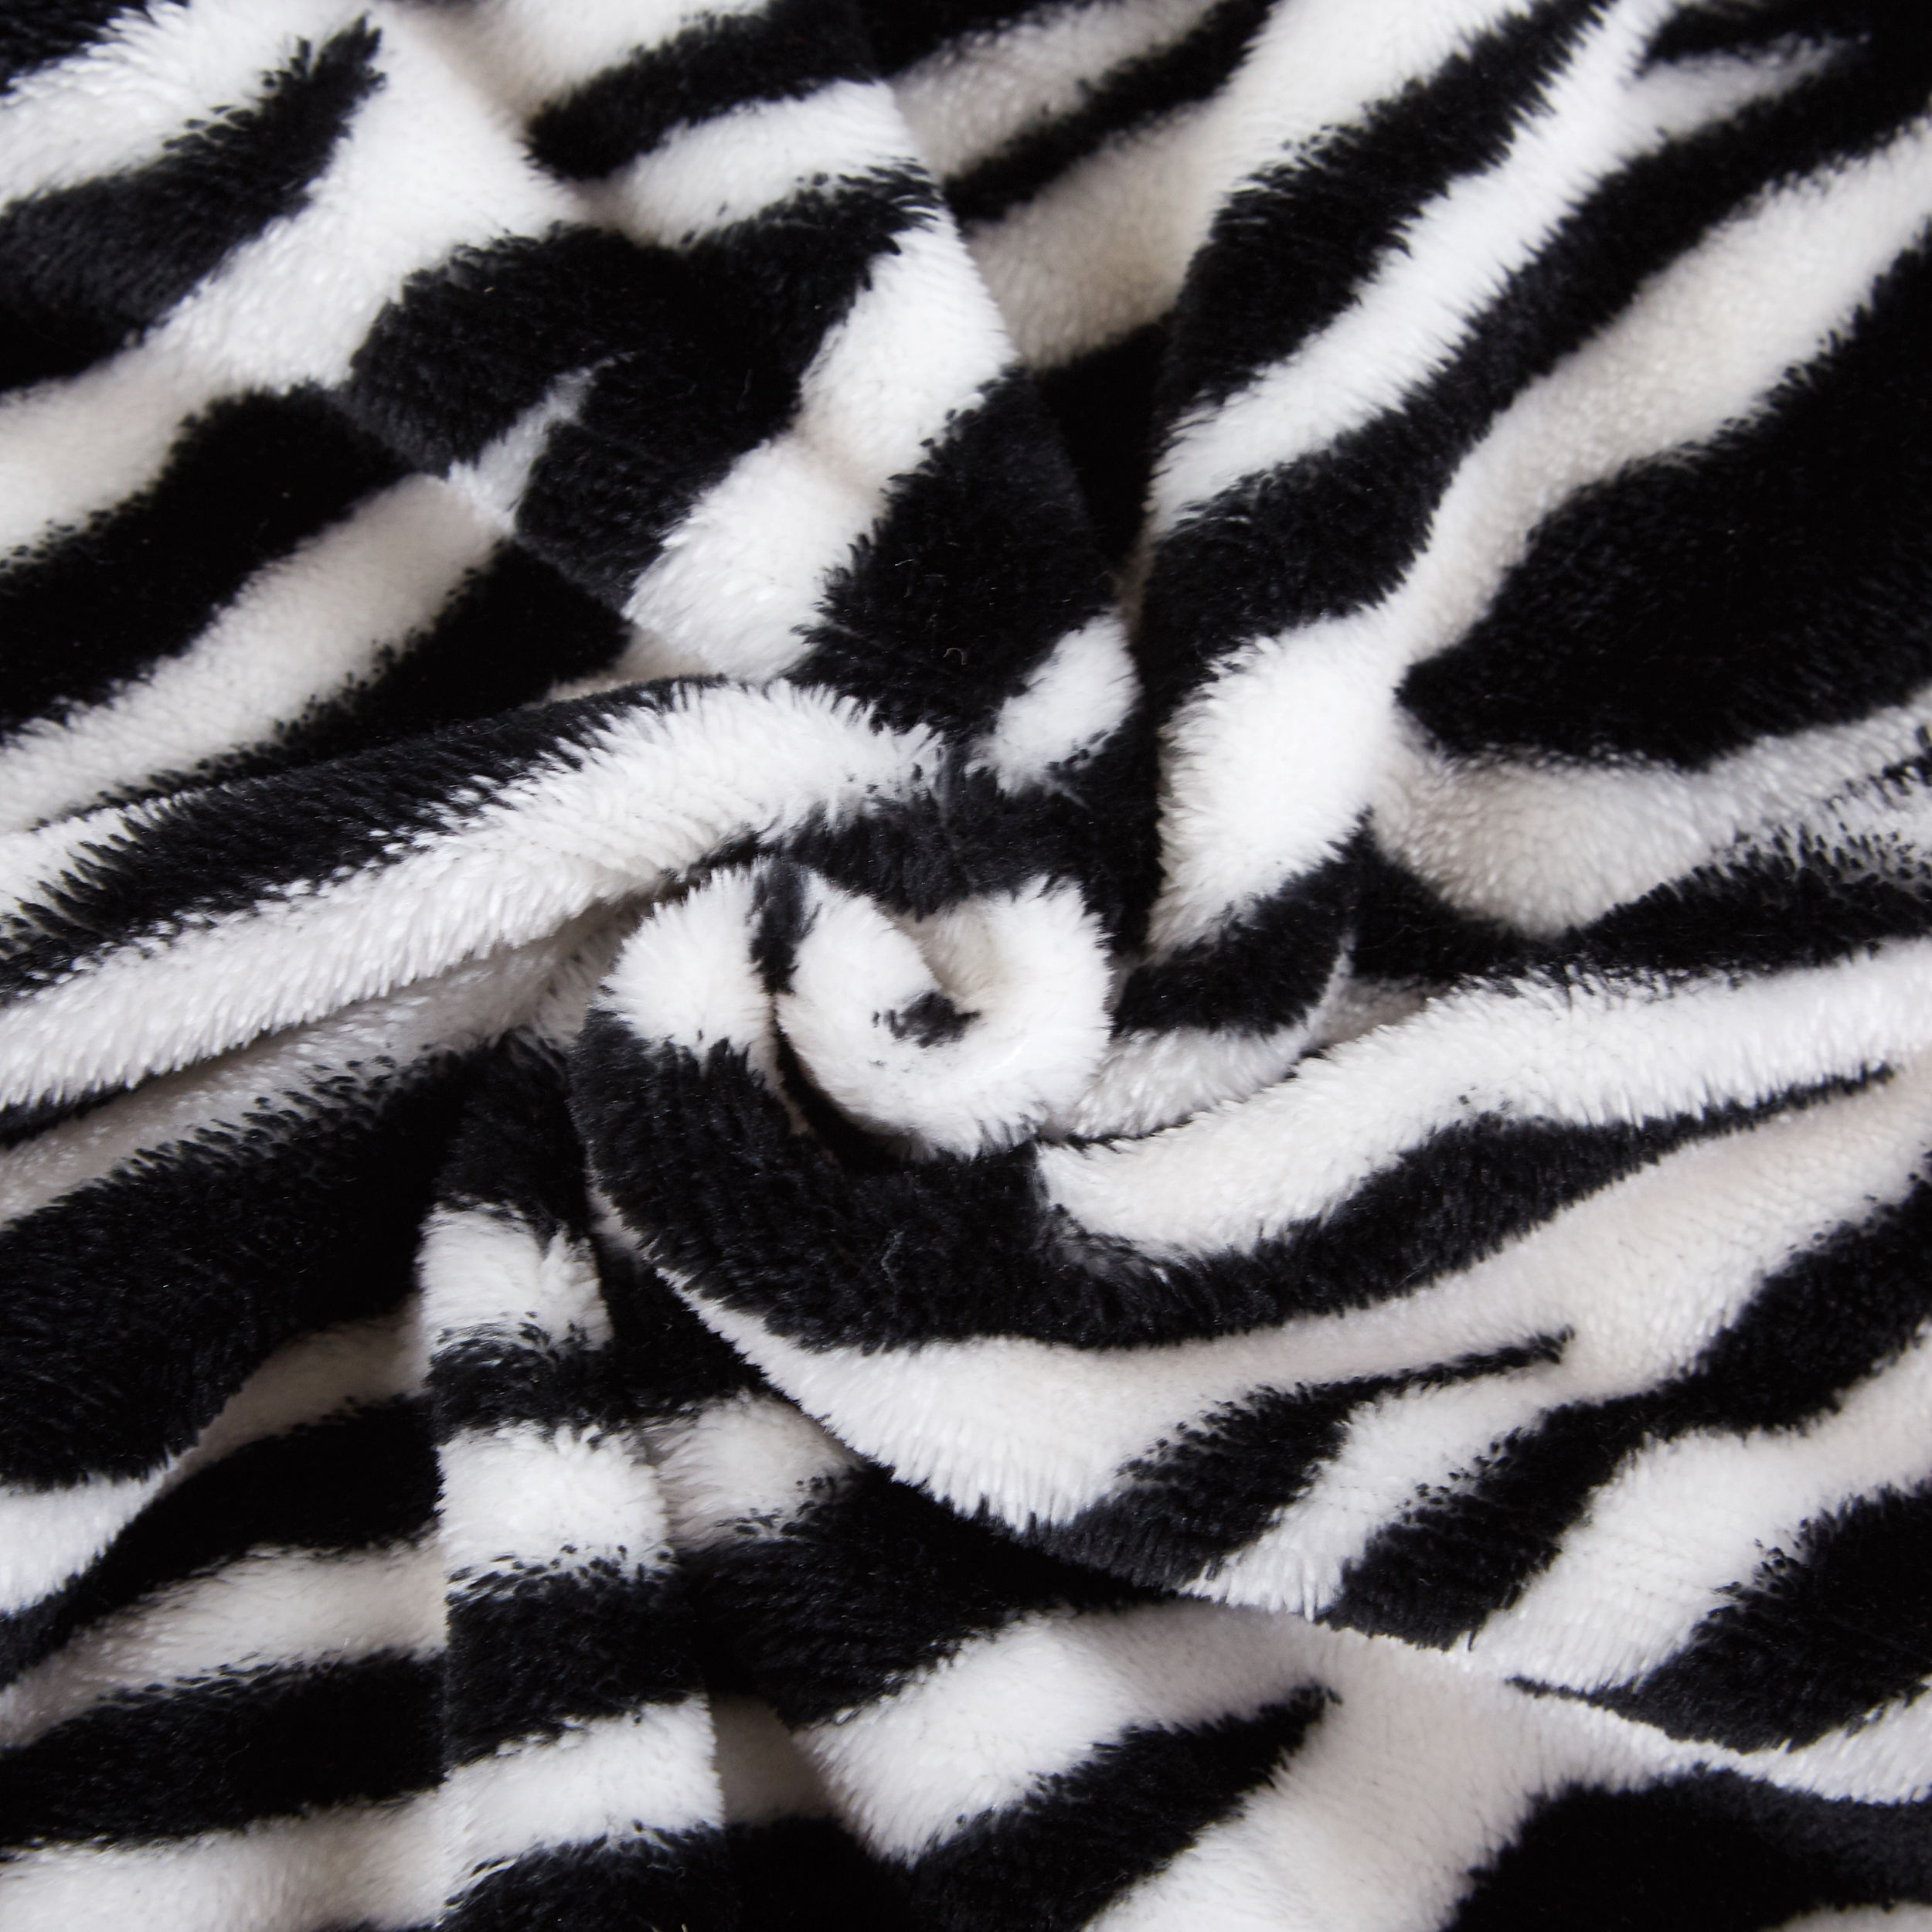 Merrylife Throw Blankets for Sofa bed Pattern Print Striped Cheetah Zebra Home Textile Flannel Plush Soft Travel Oversized-2